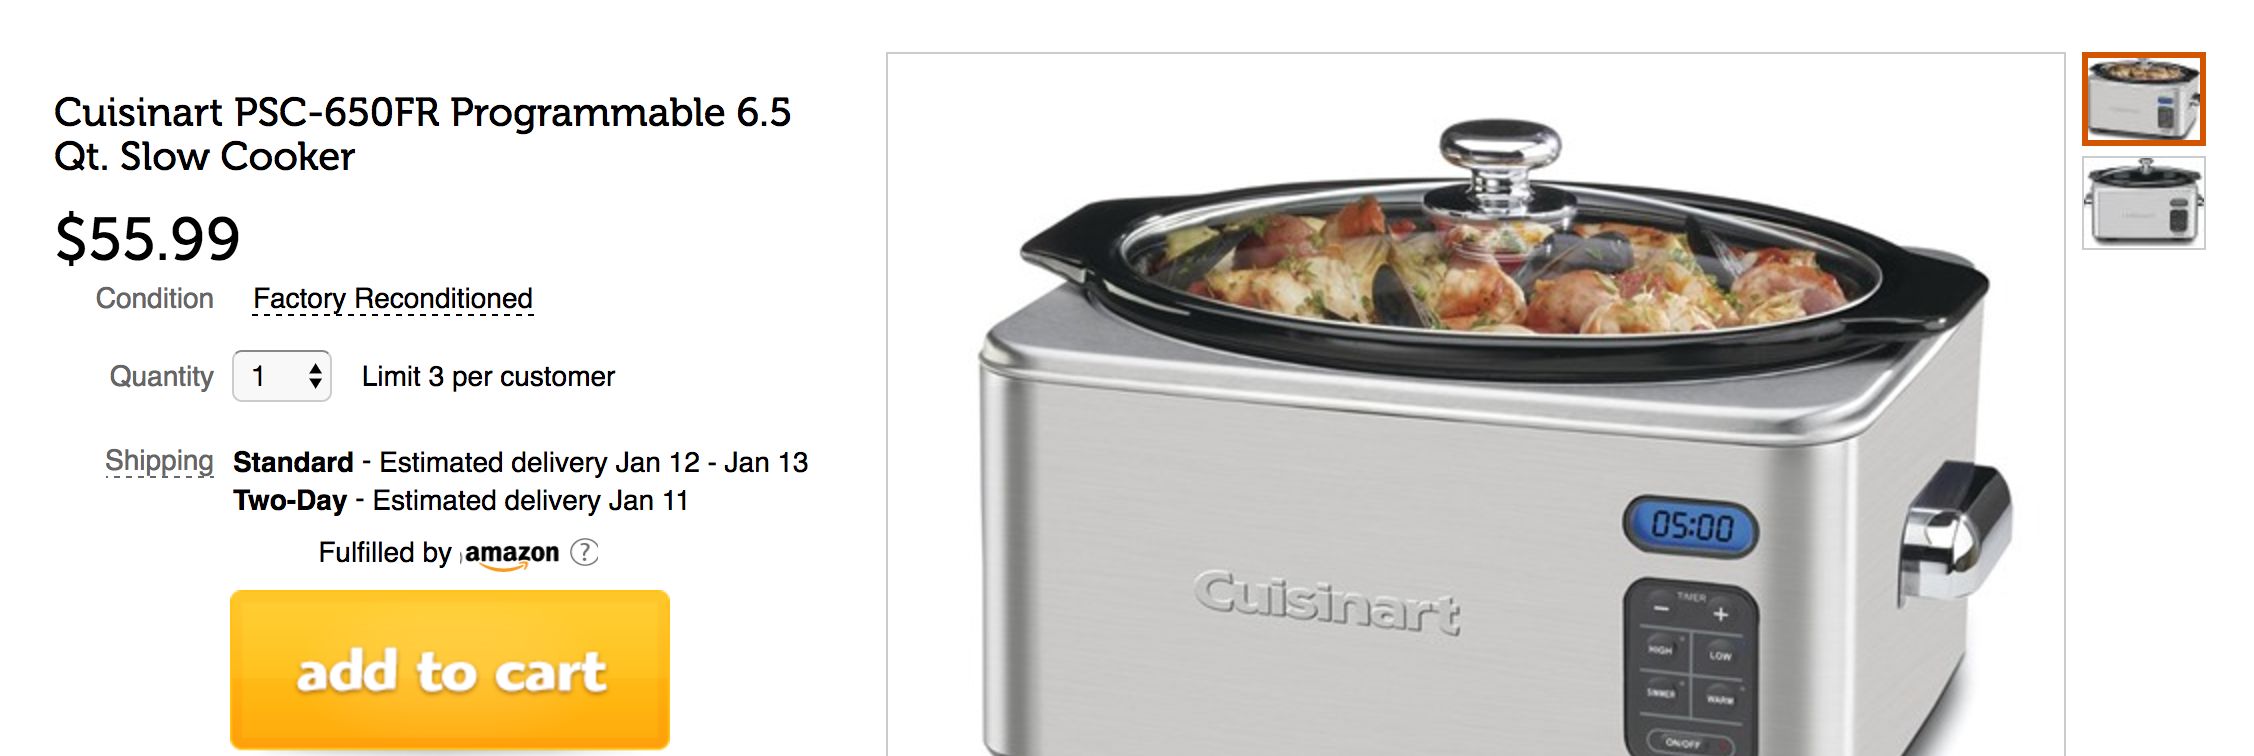 cuisinart-stainless-steel-6-quart-programmable-slow-cooker-3